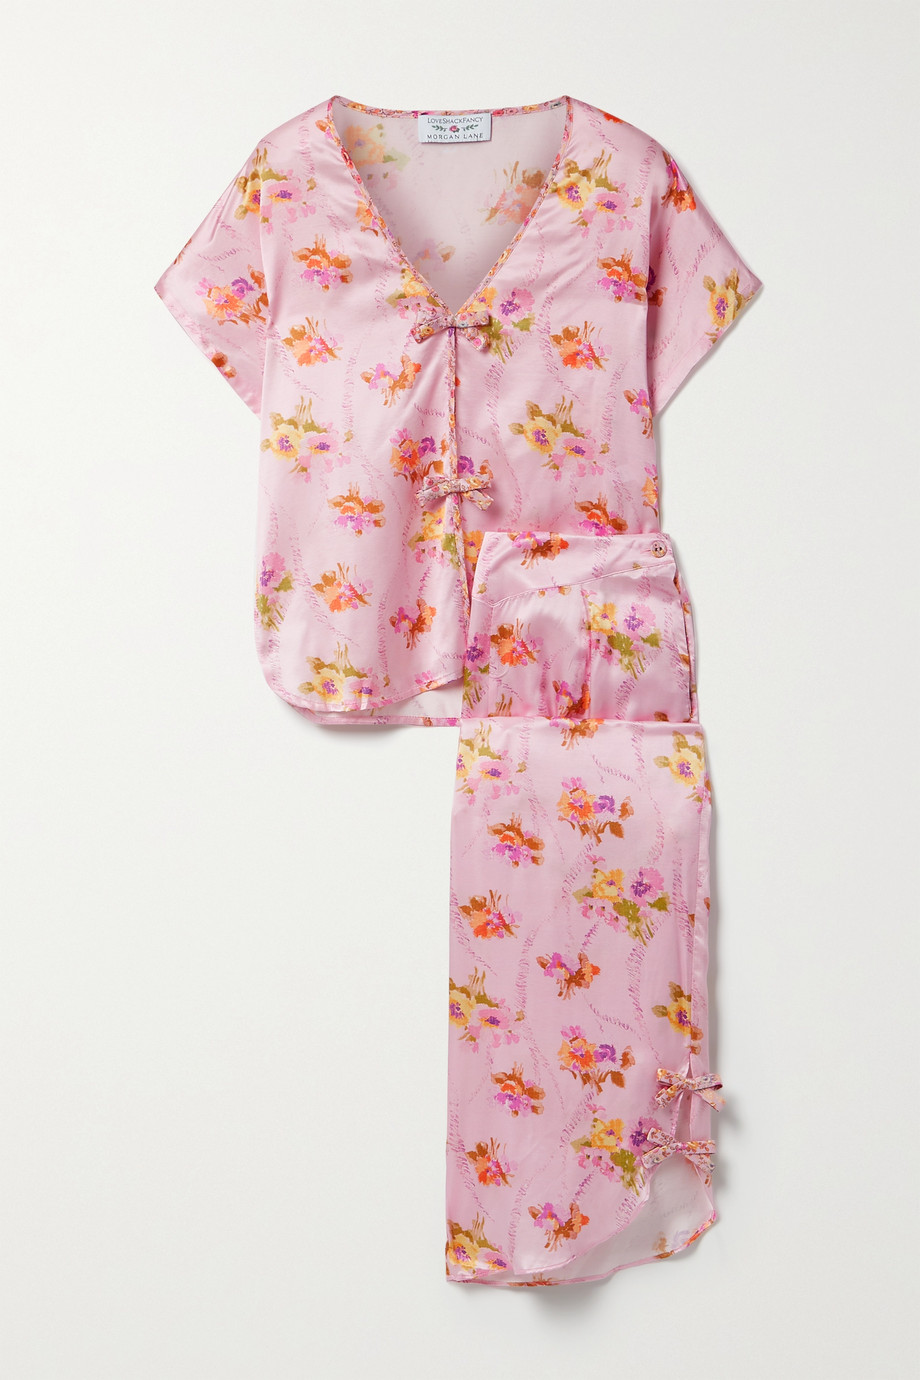 MORGAN LANE + LoveShackFancy Joanie Margo floral-print satin pajama set